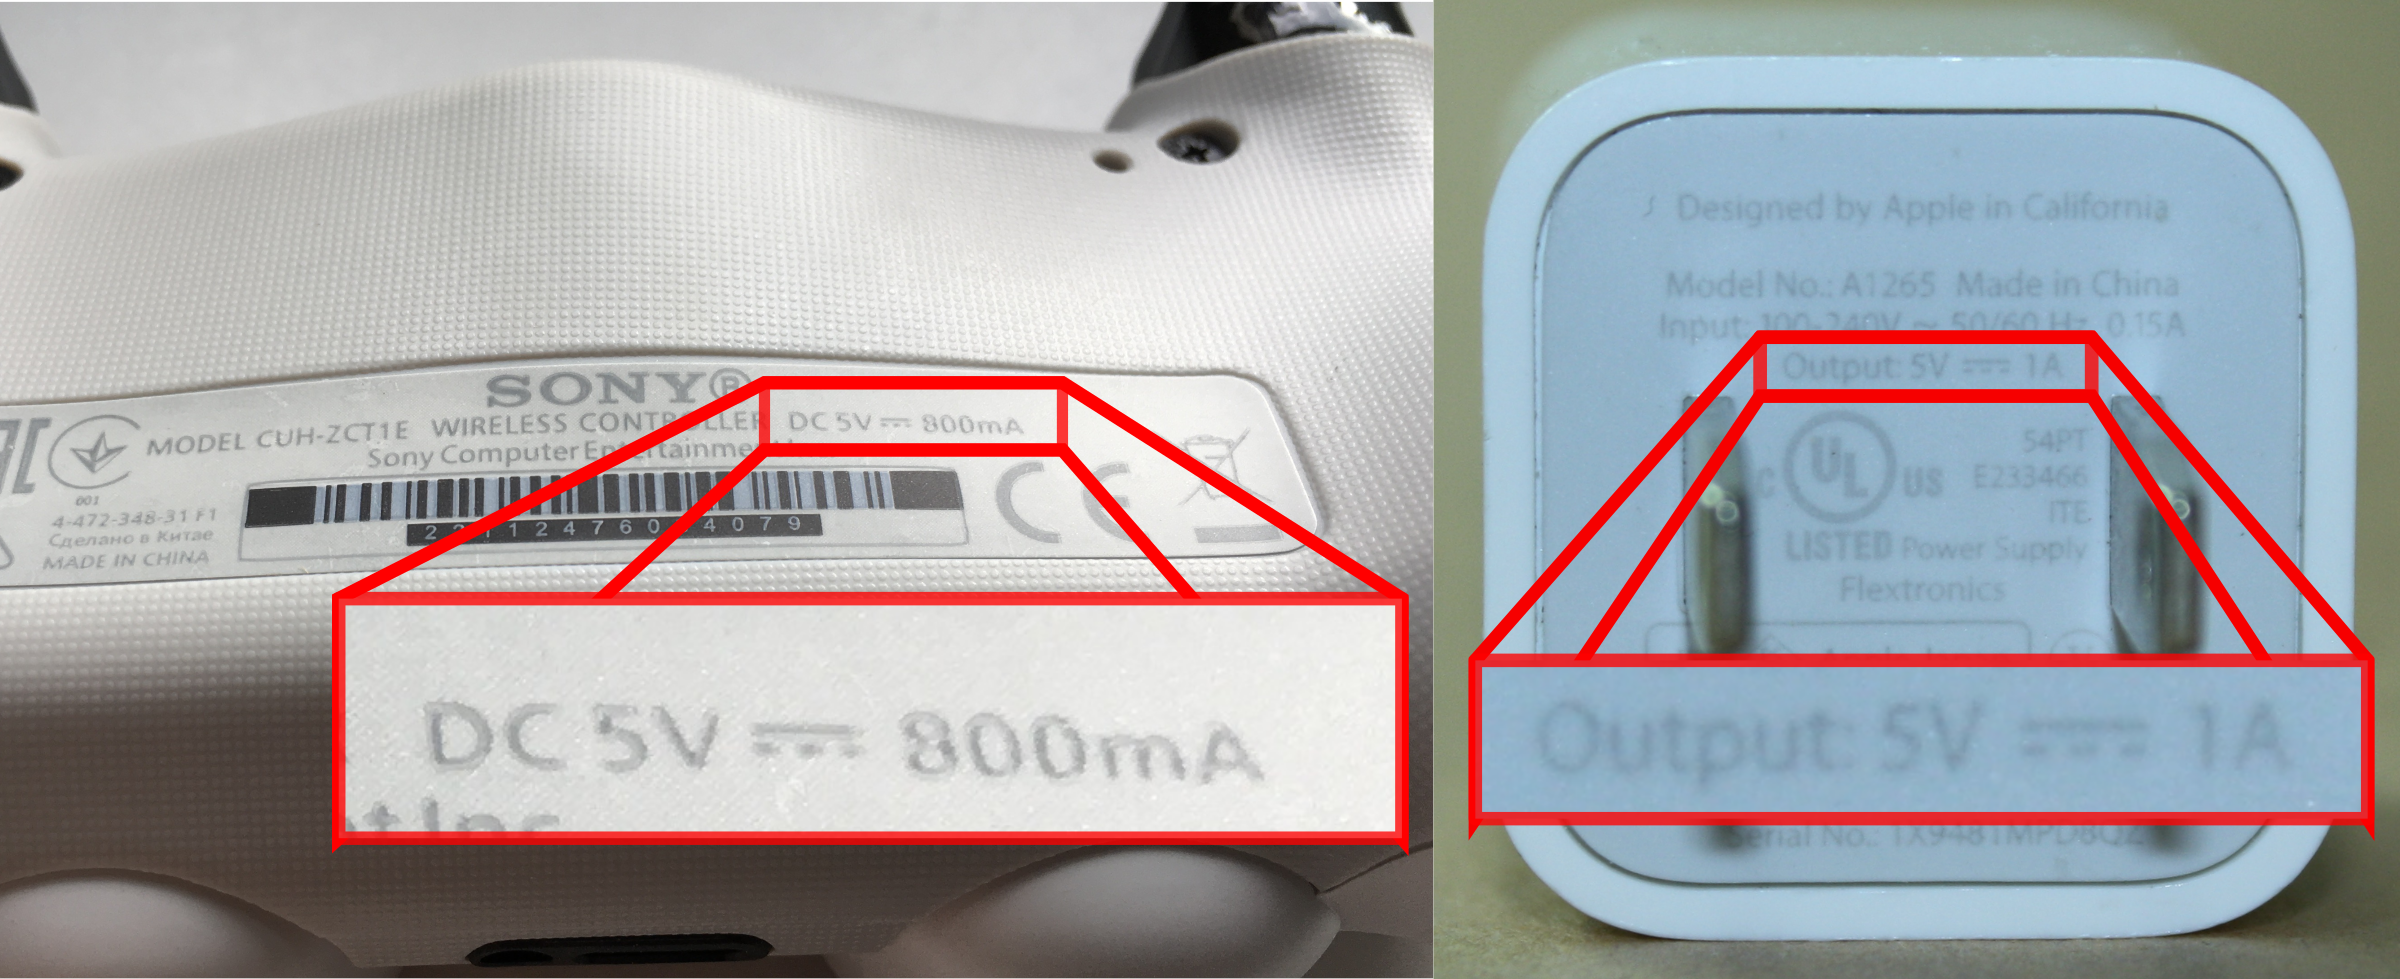 How To Charge a PS4 Controller Without Its Cable